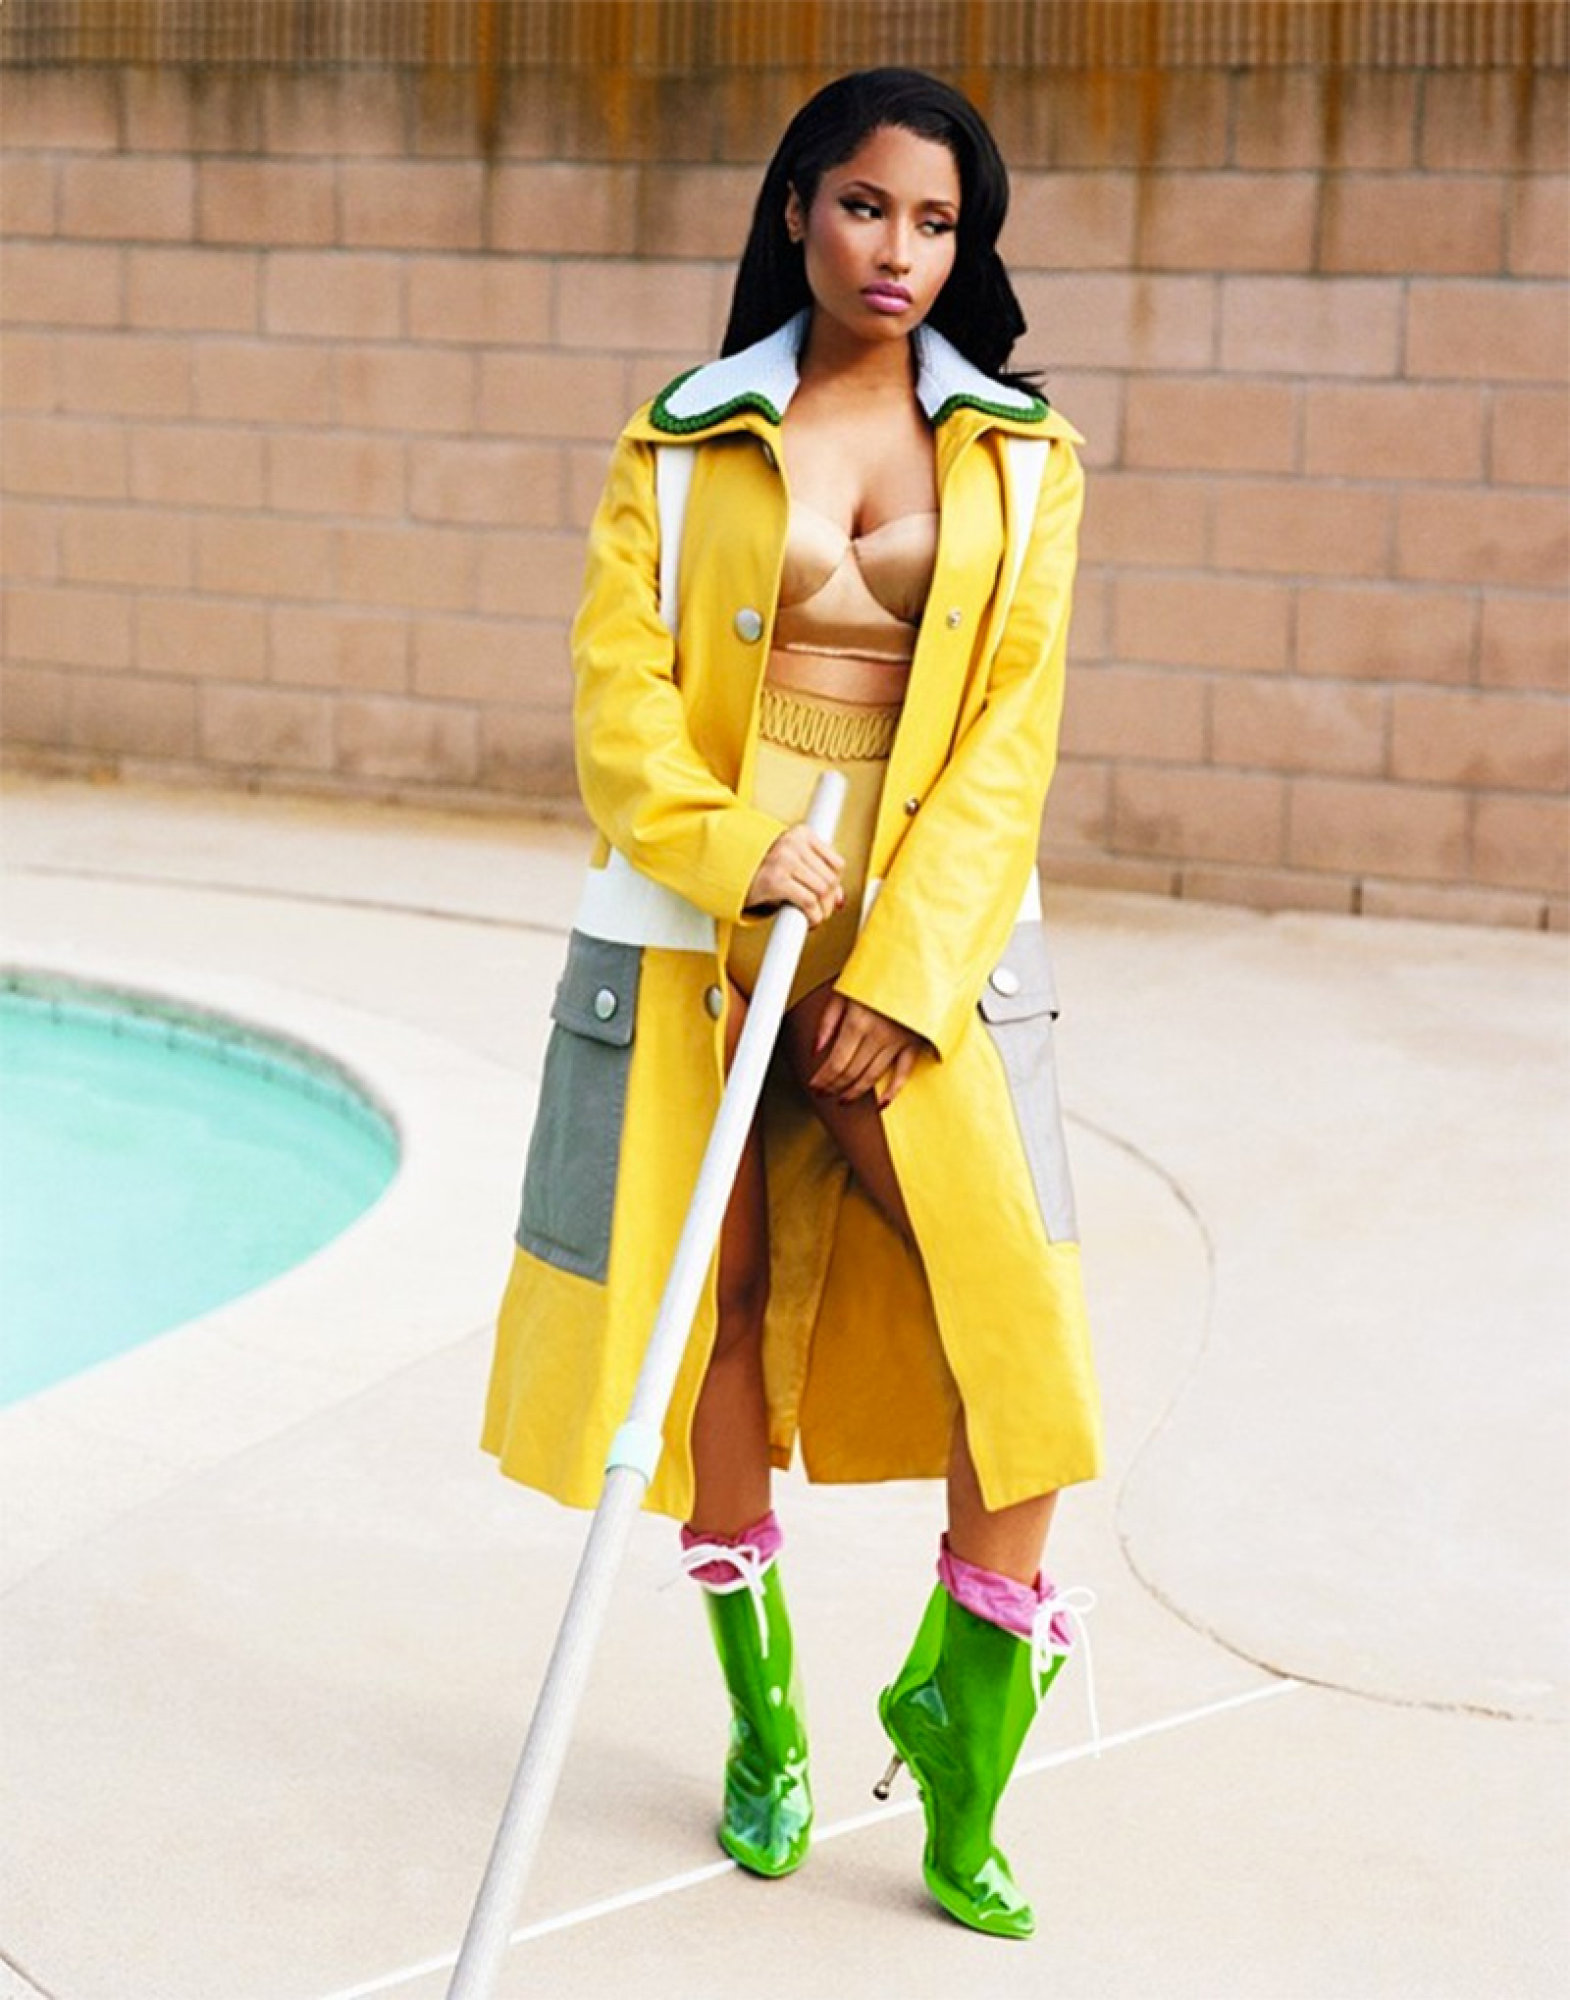 Nicki-Minaj-Fronts-Two-Covers for-Dazed- Confused-6